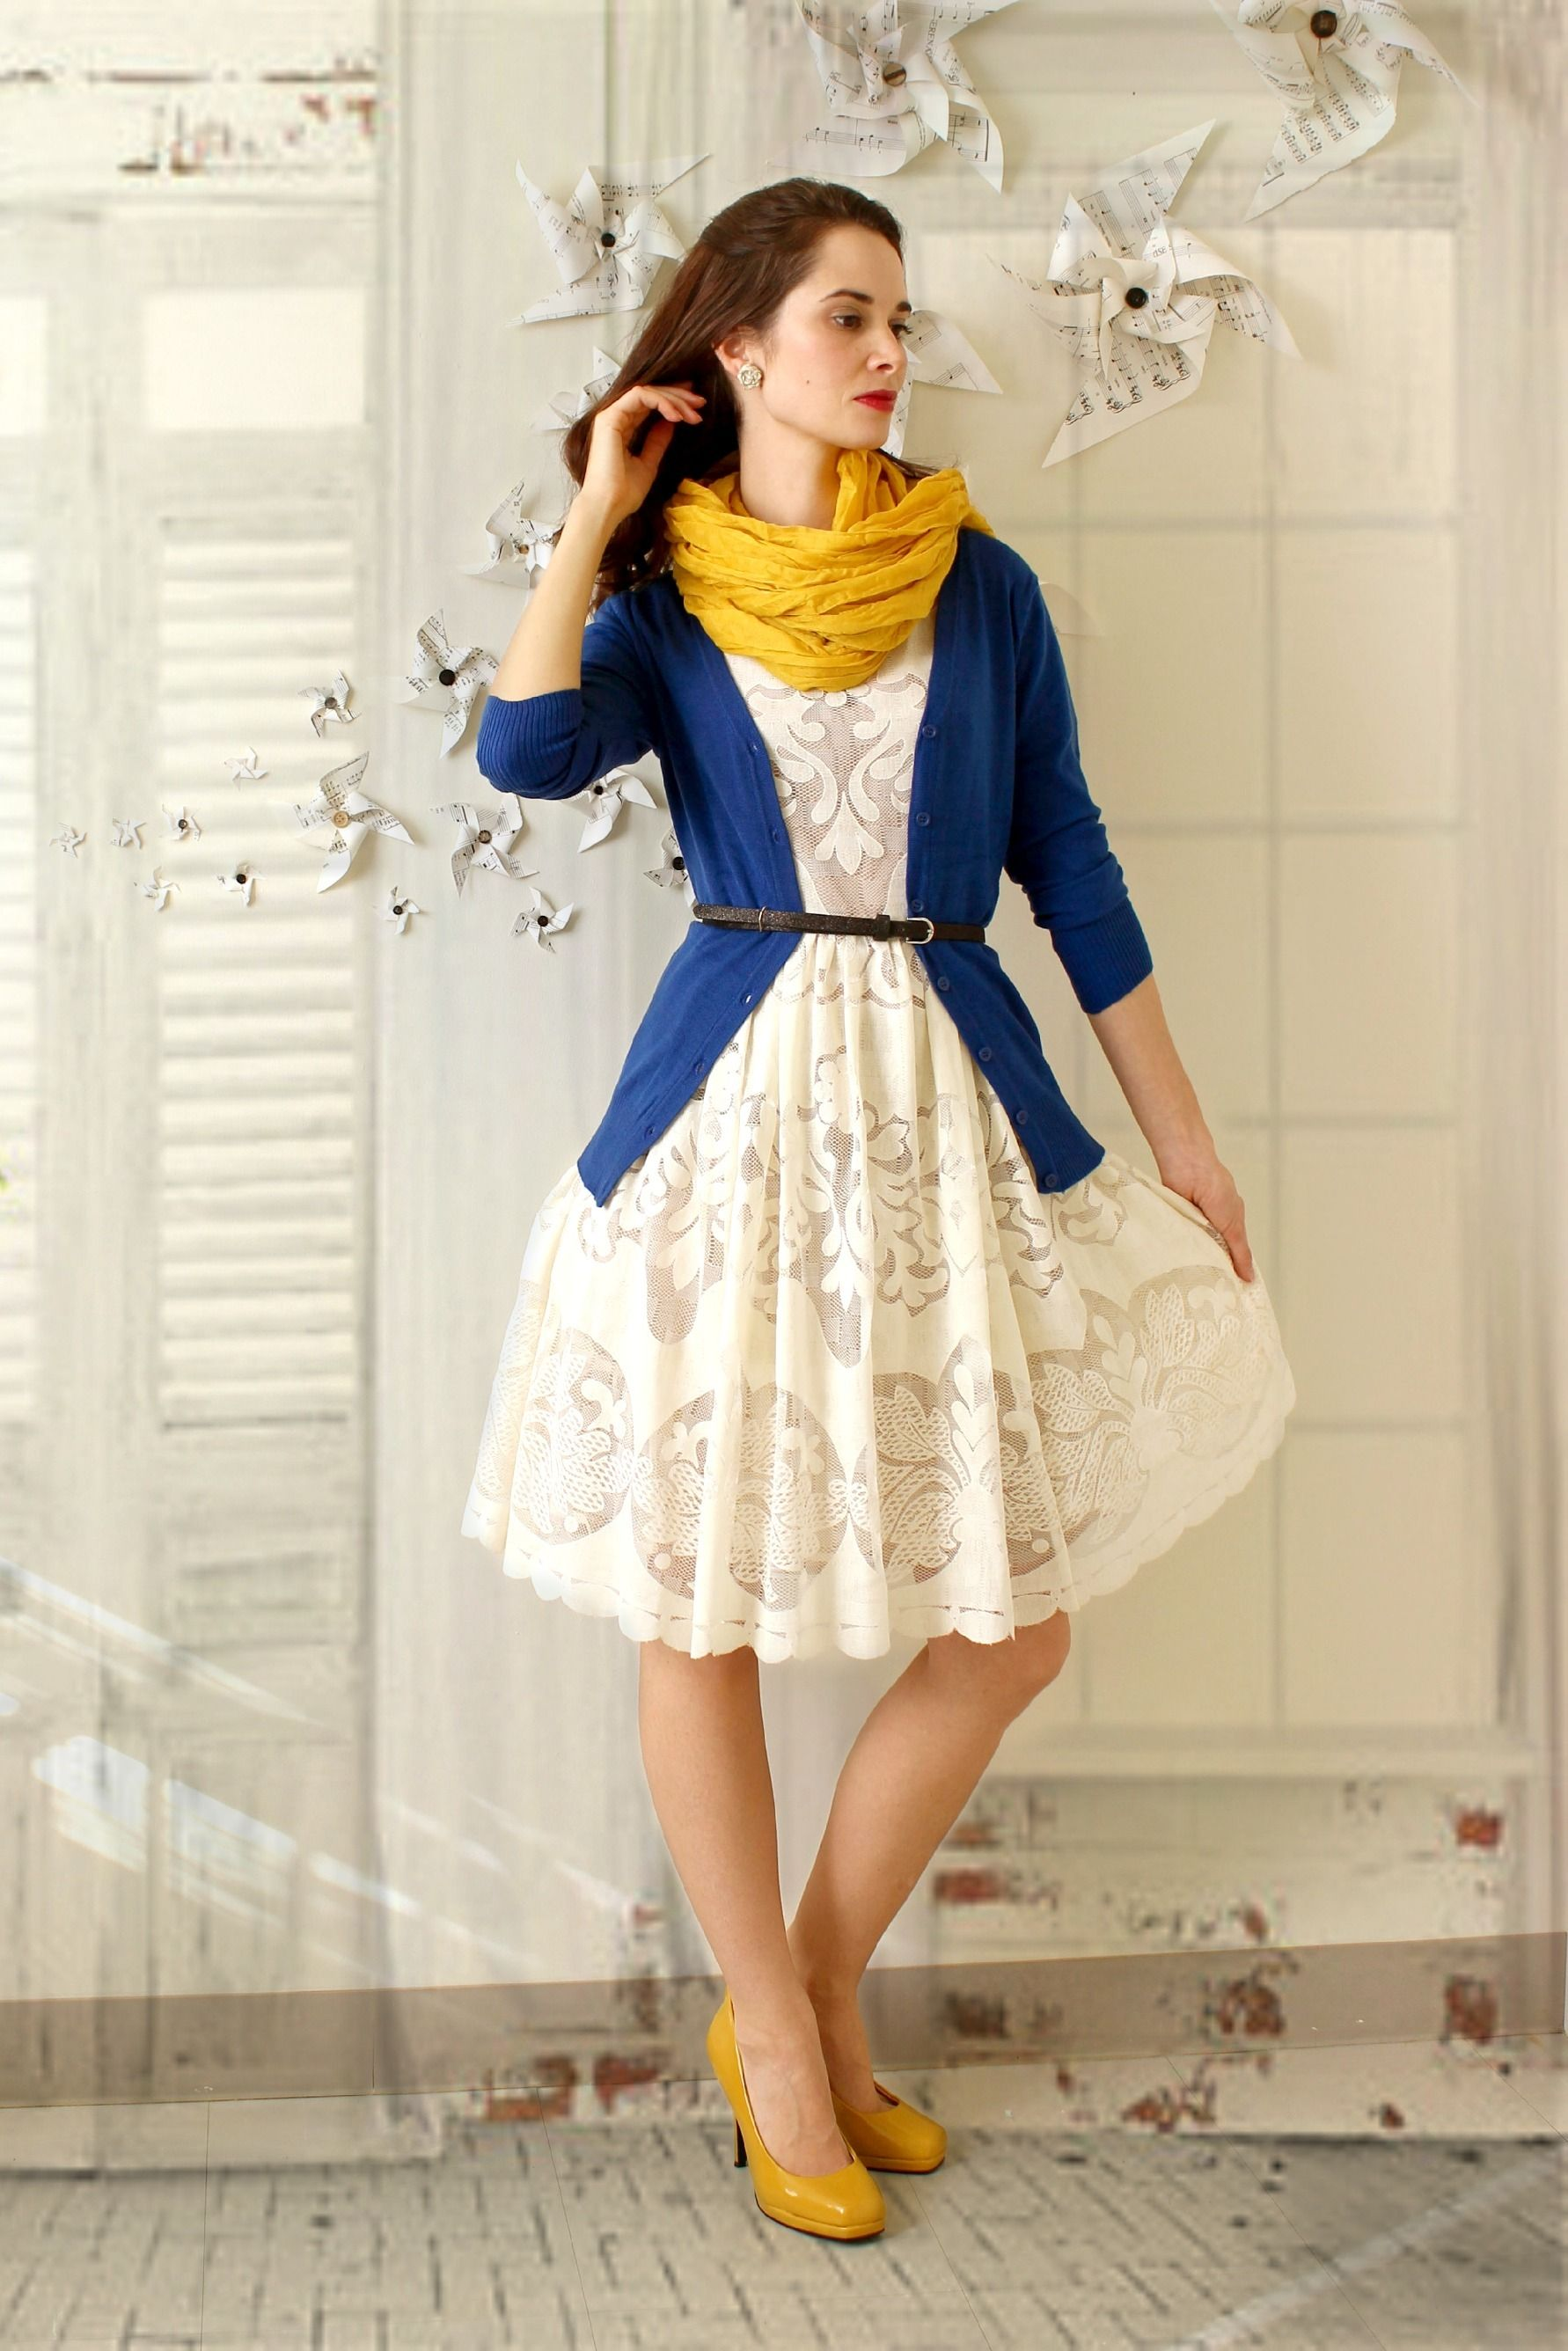 From The Modcloth Stylegallery Beautiful Outfit The White Dress Paired With The Blue And Yellow Accents Works Wonde Modest Outfits Beautiful Outfits Fashion [ 2672 x 1782 Pixel ]